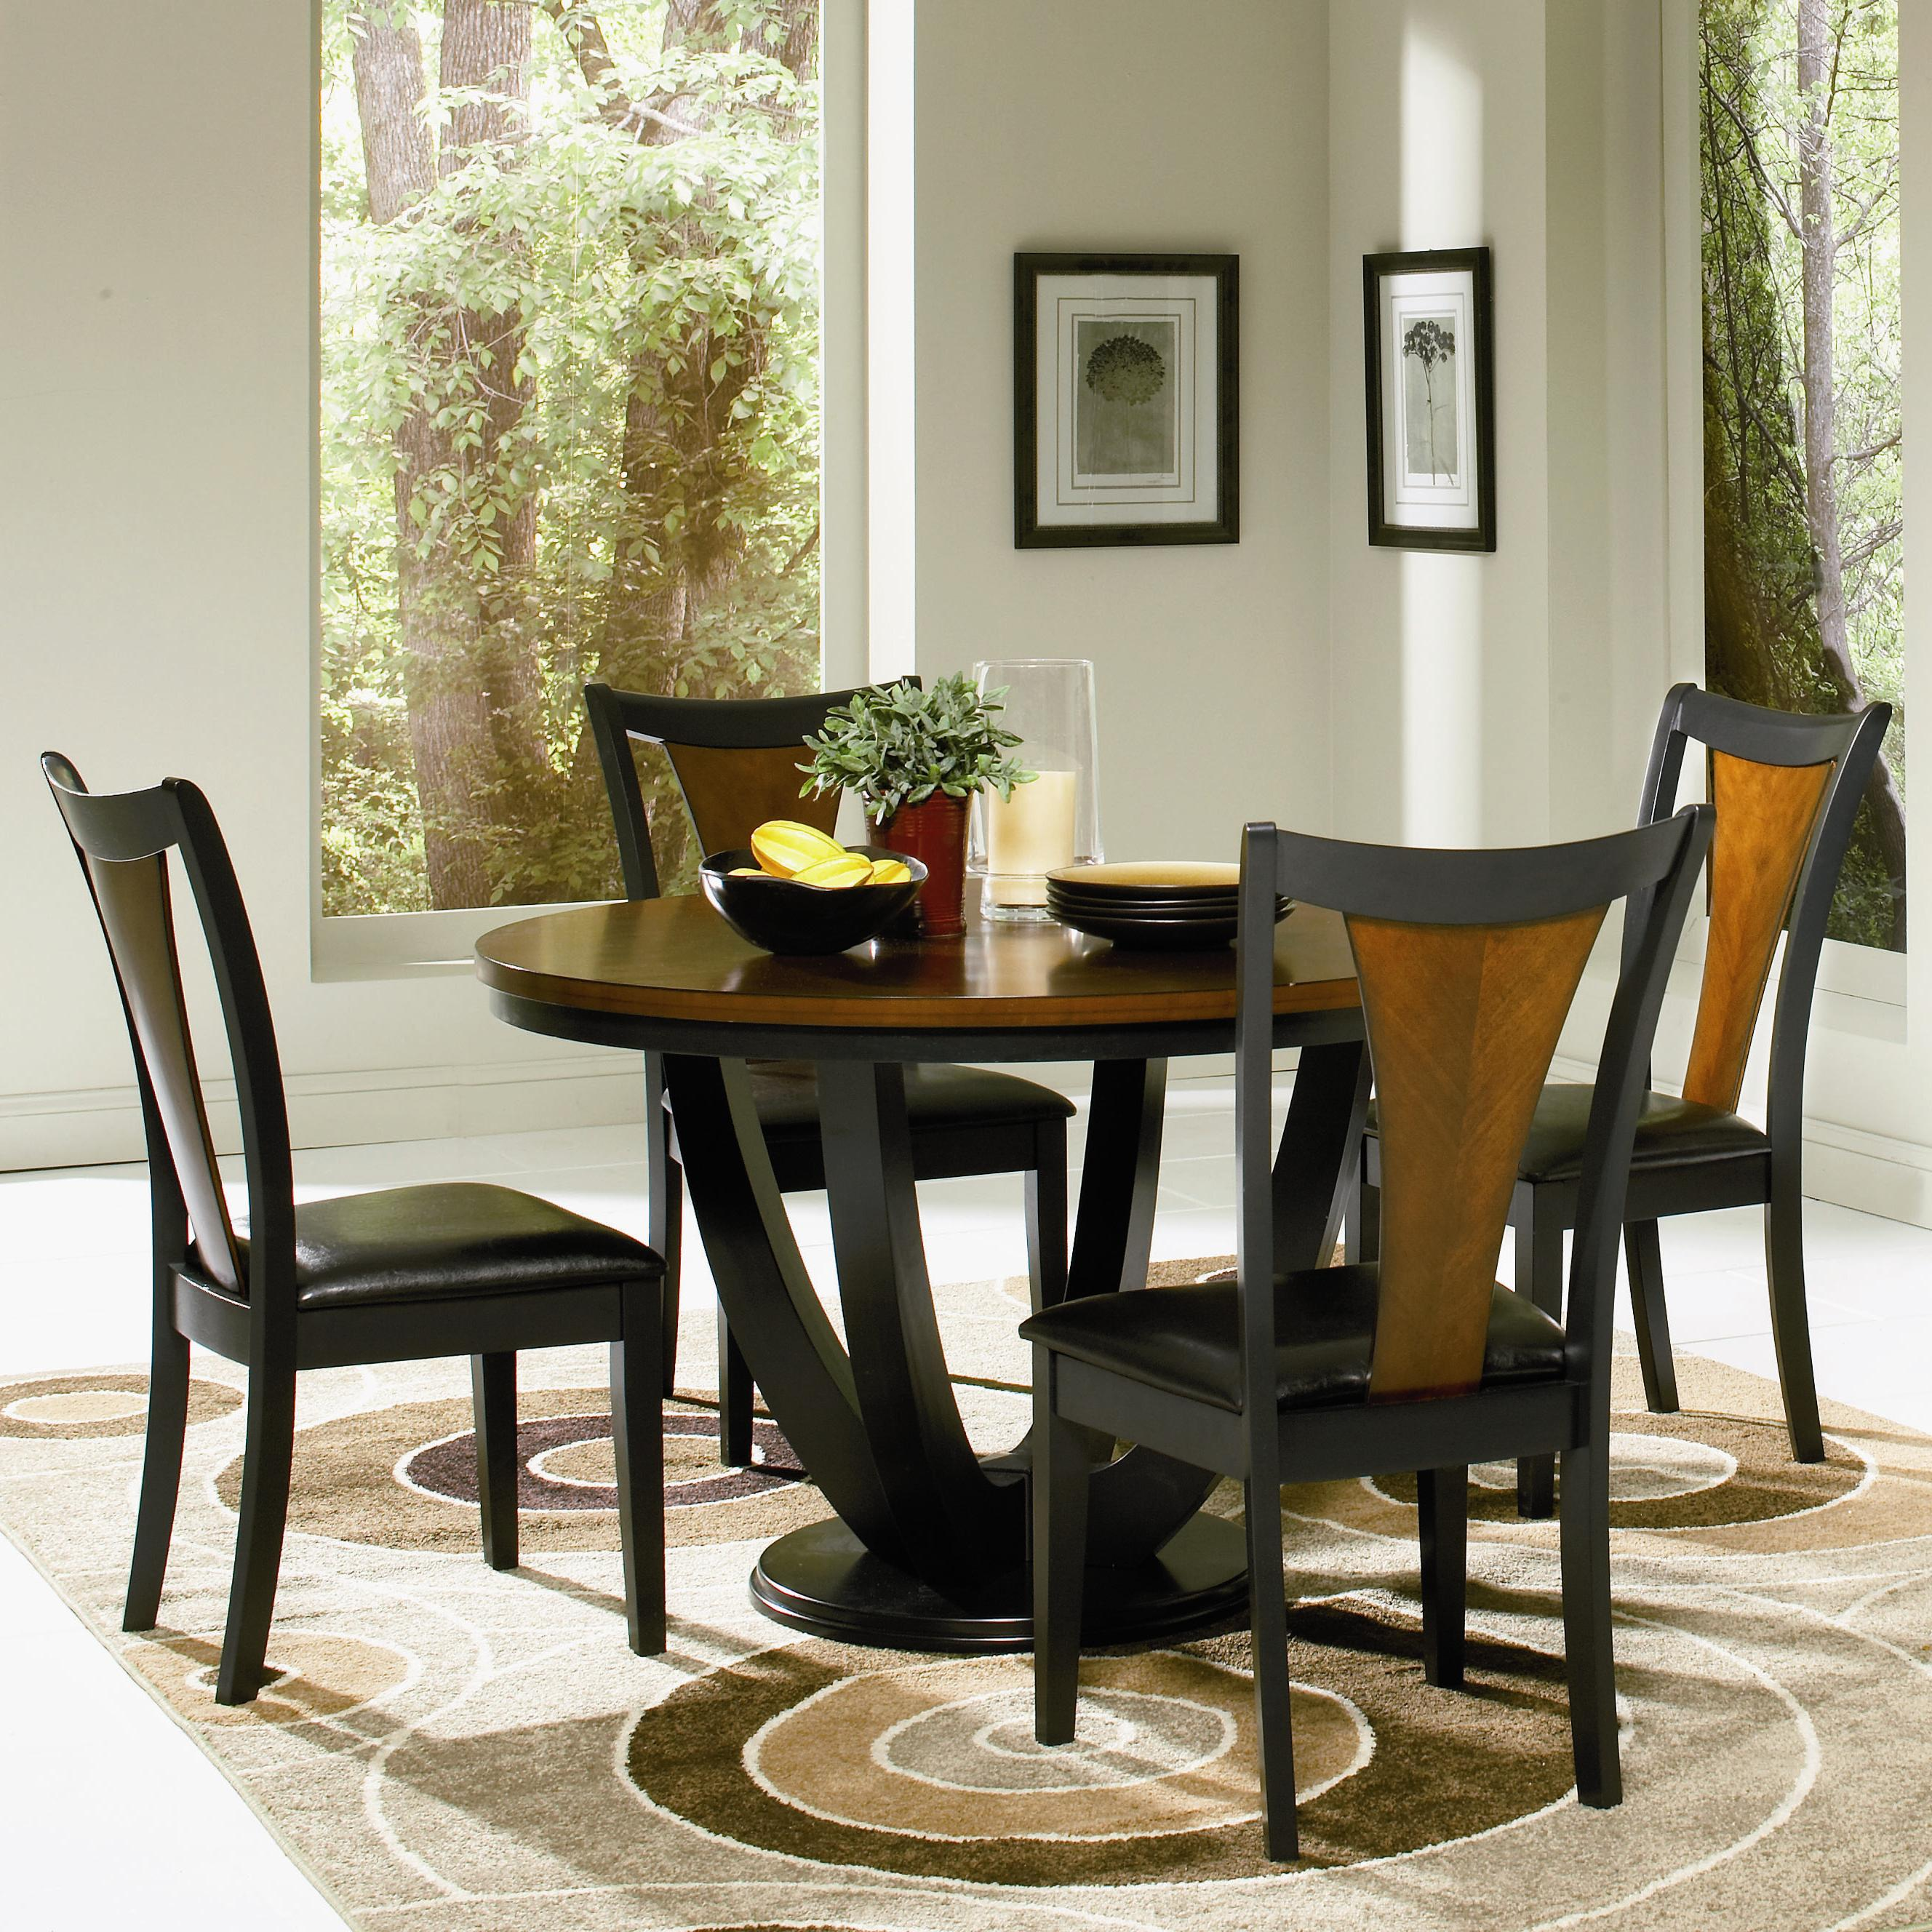 Coaster Boyer 5 Piece Table and Chair Set - Item Number: 102091+4x2